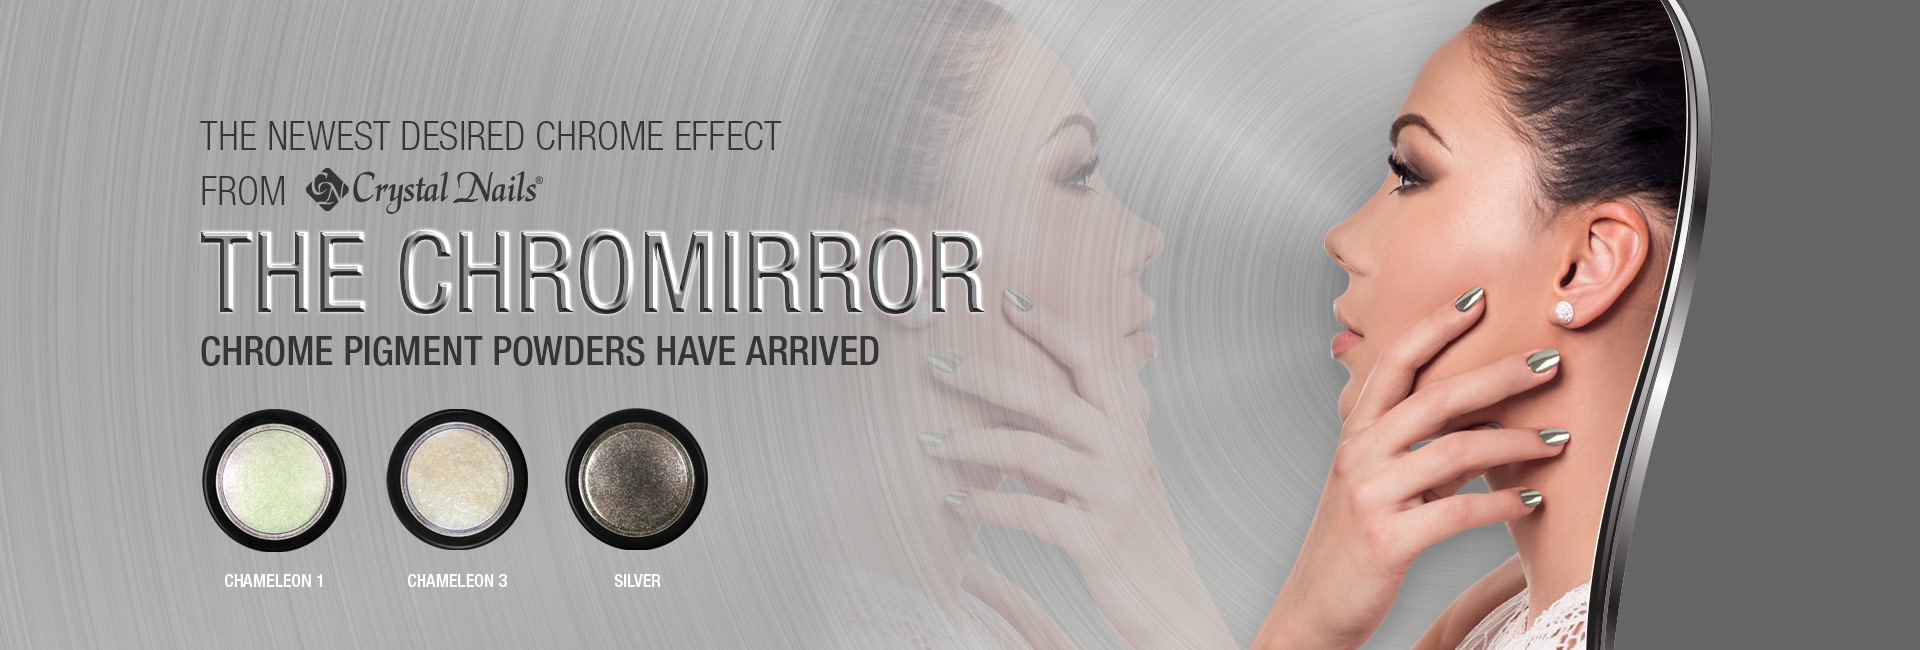 New Arrival! ChroMirror Chrome Pigment Powders!